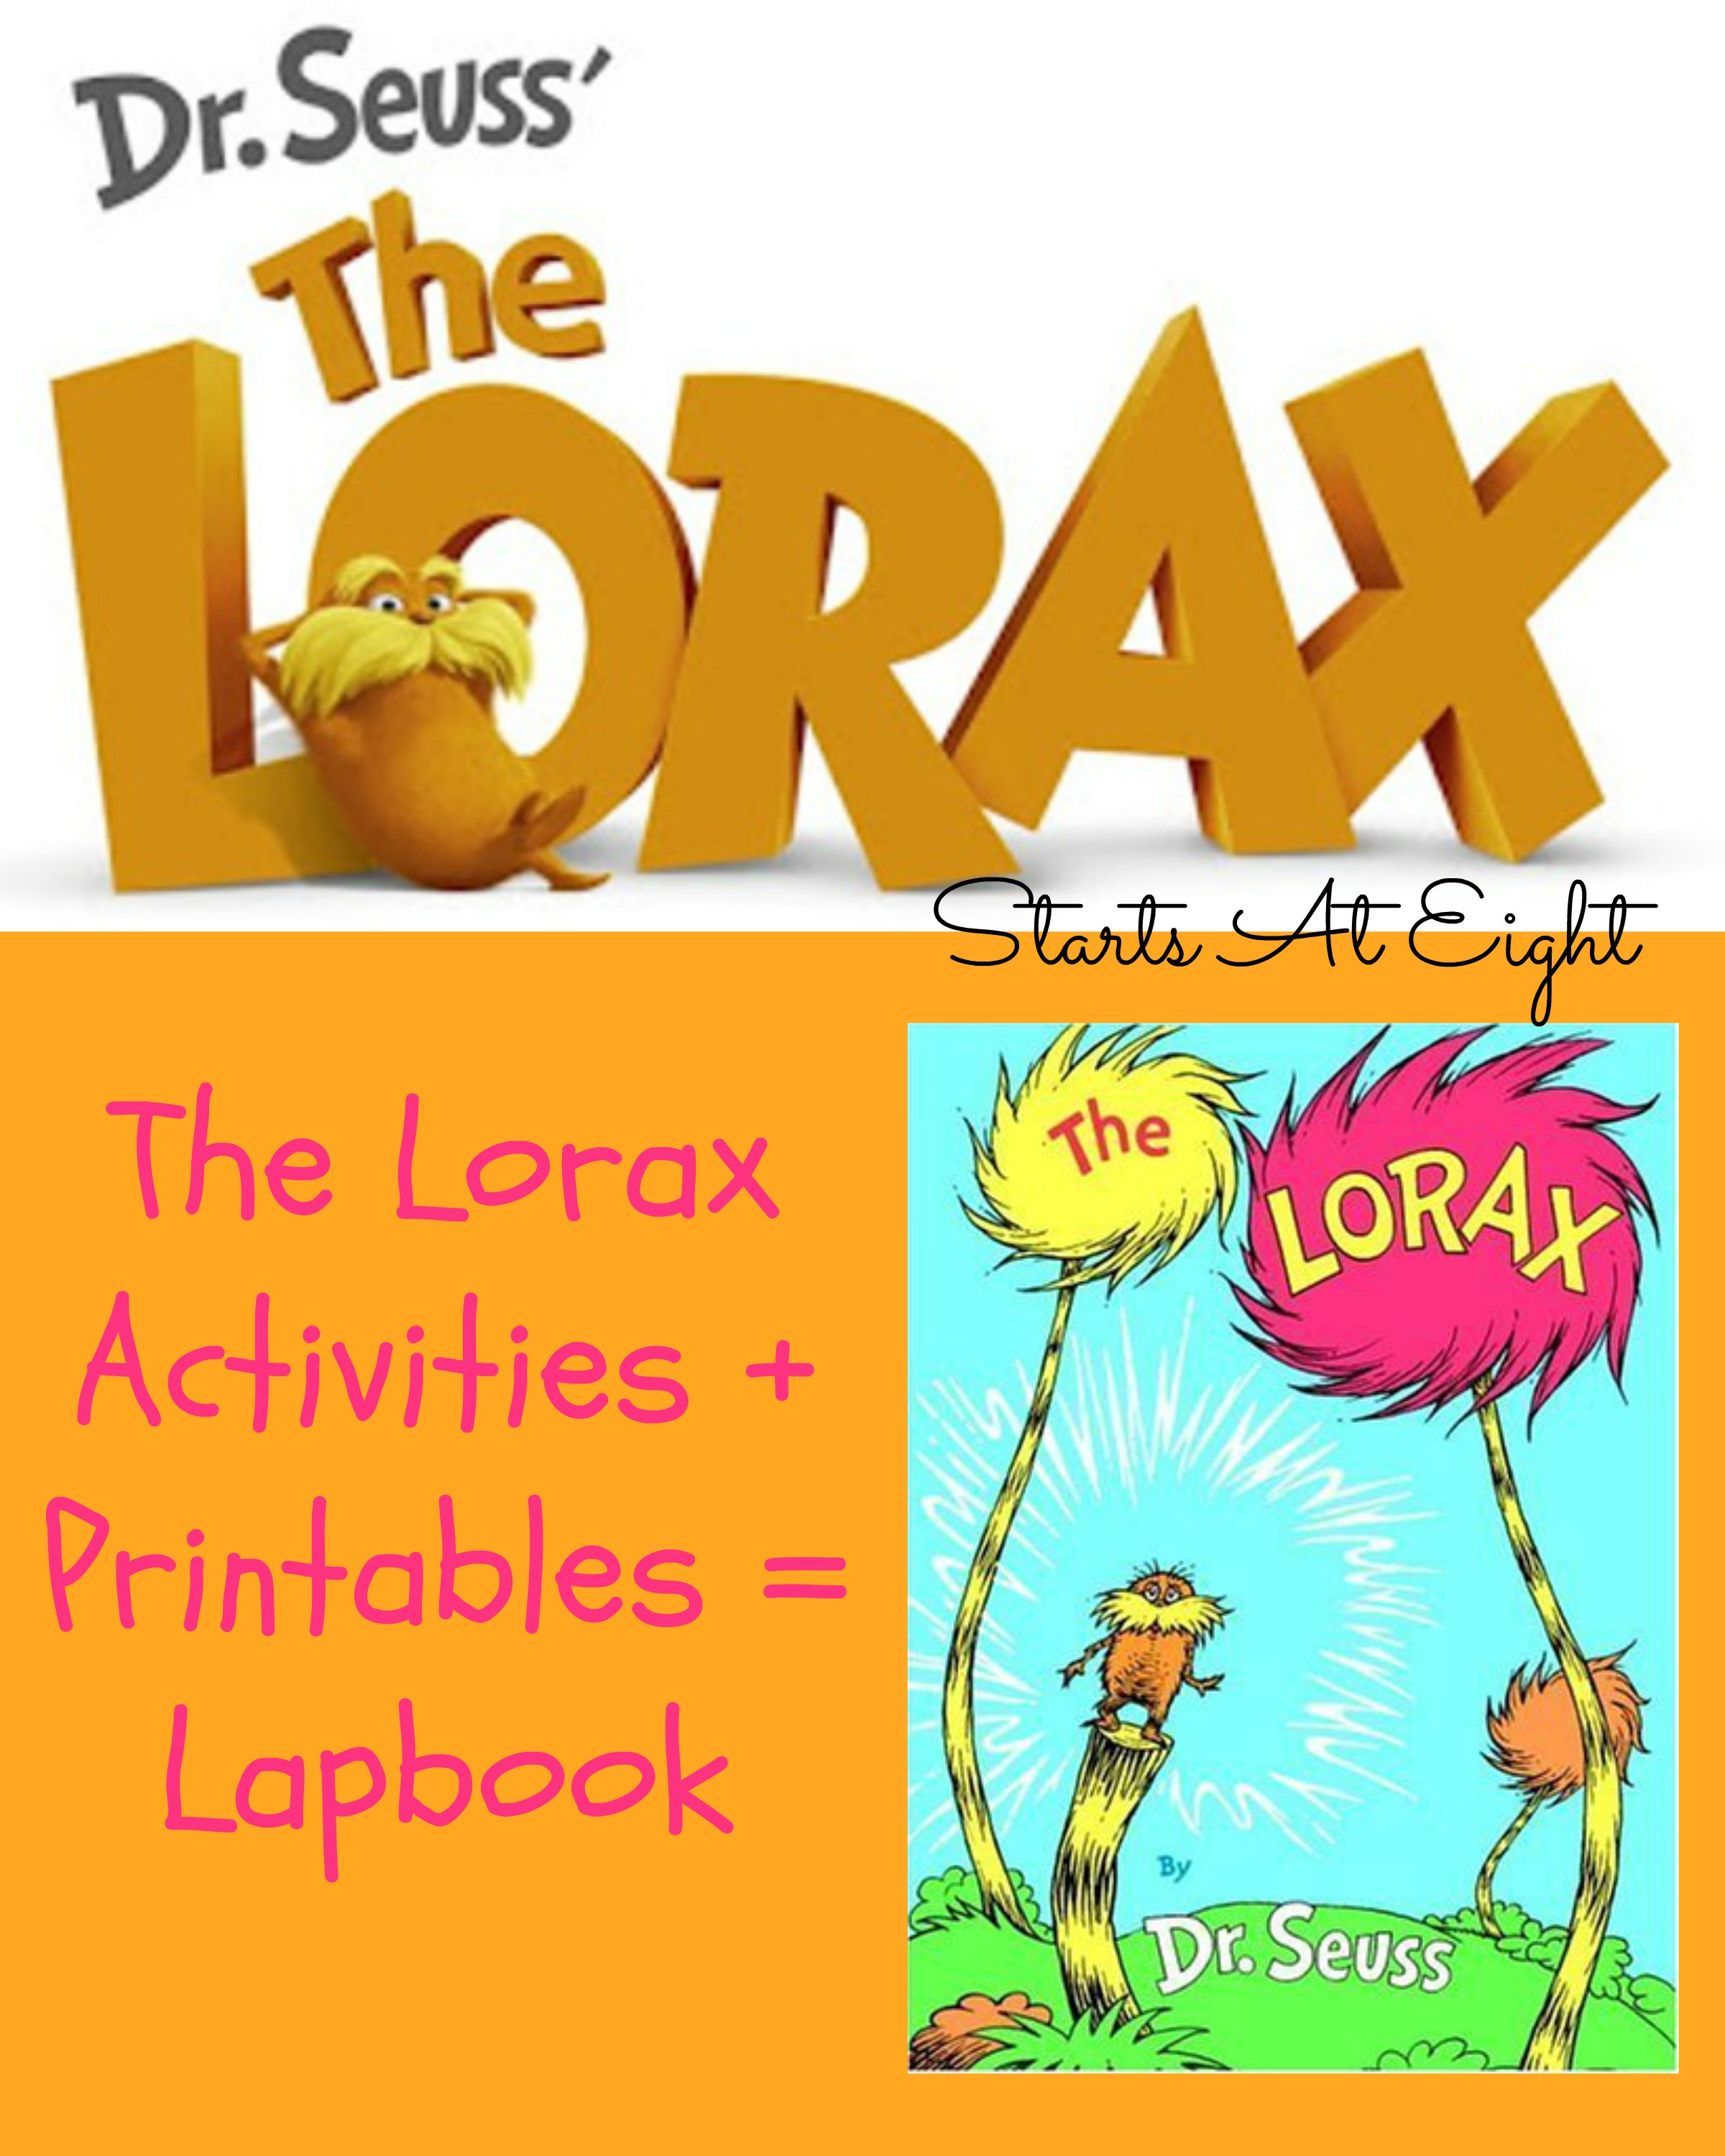 The Lorax Activites  Printables  Lapbook  Startsateight For The Lorax By Dr Seuss Worksheet